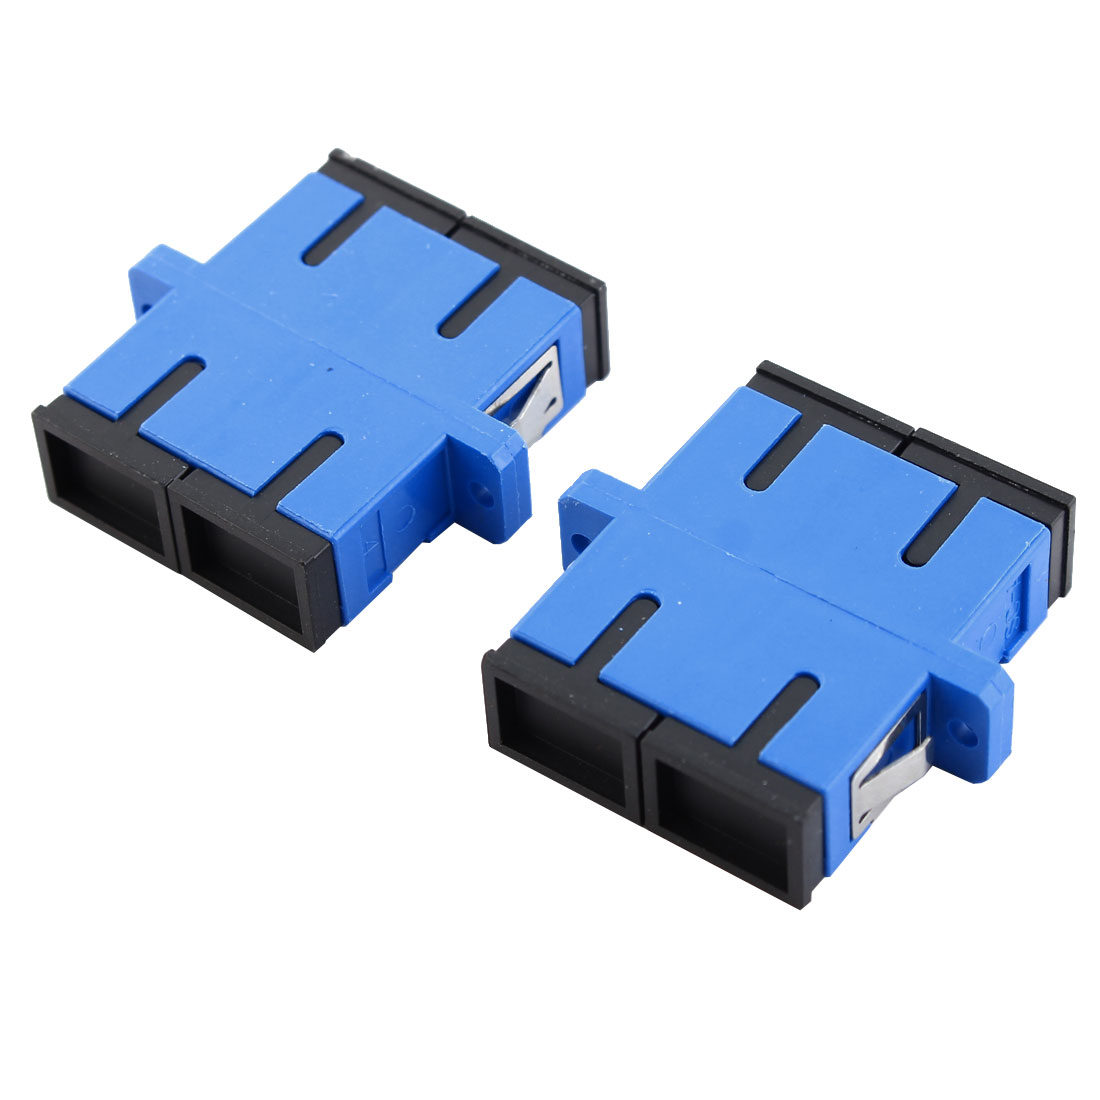 2 Pcs SC/SC Duplex Flange Fiber Optical Connector Adapter Coupler Blue Black